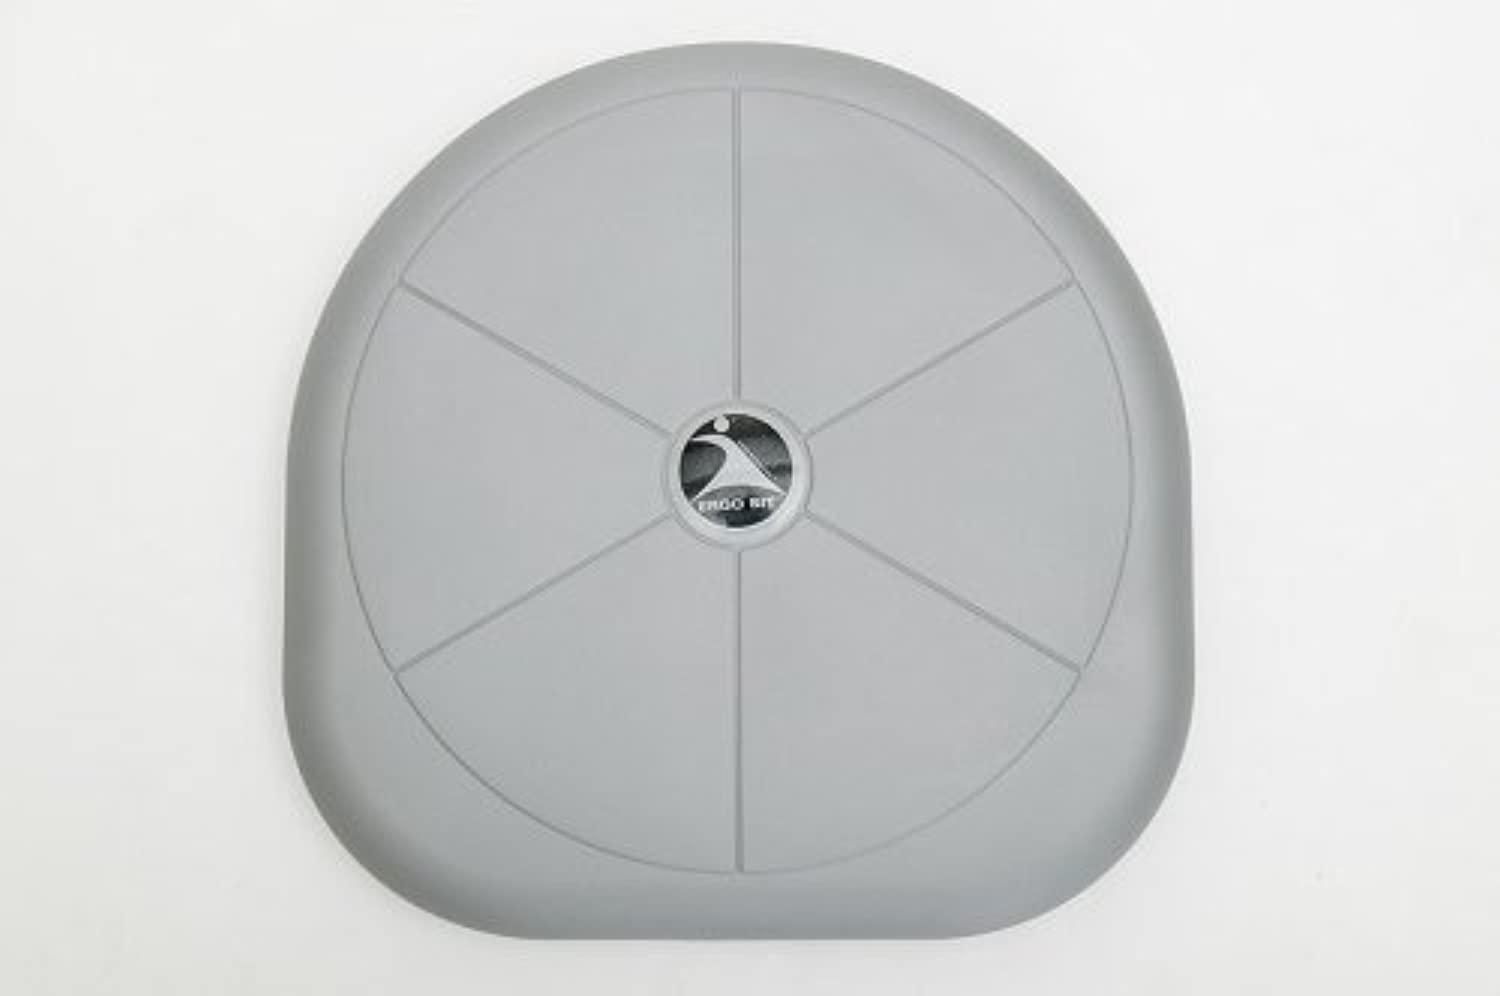 Ergo Sit Seat Cushion  Improve Posture and Promote Better Balance While Sitting  Silver